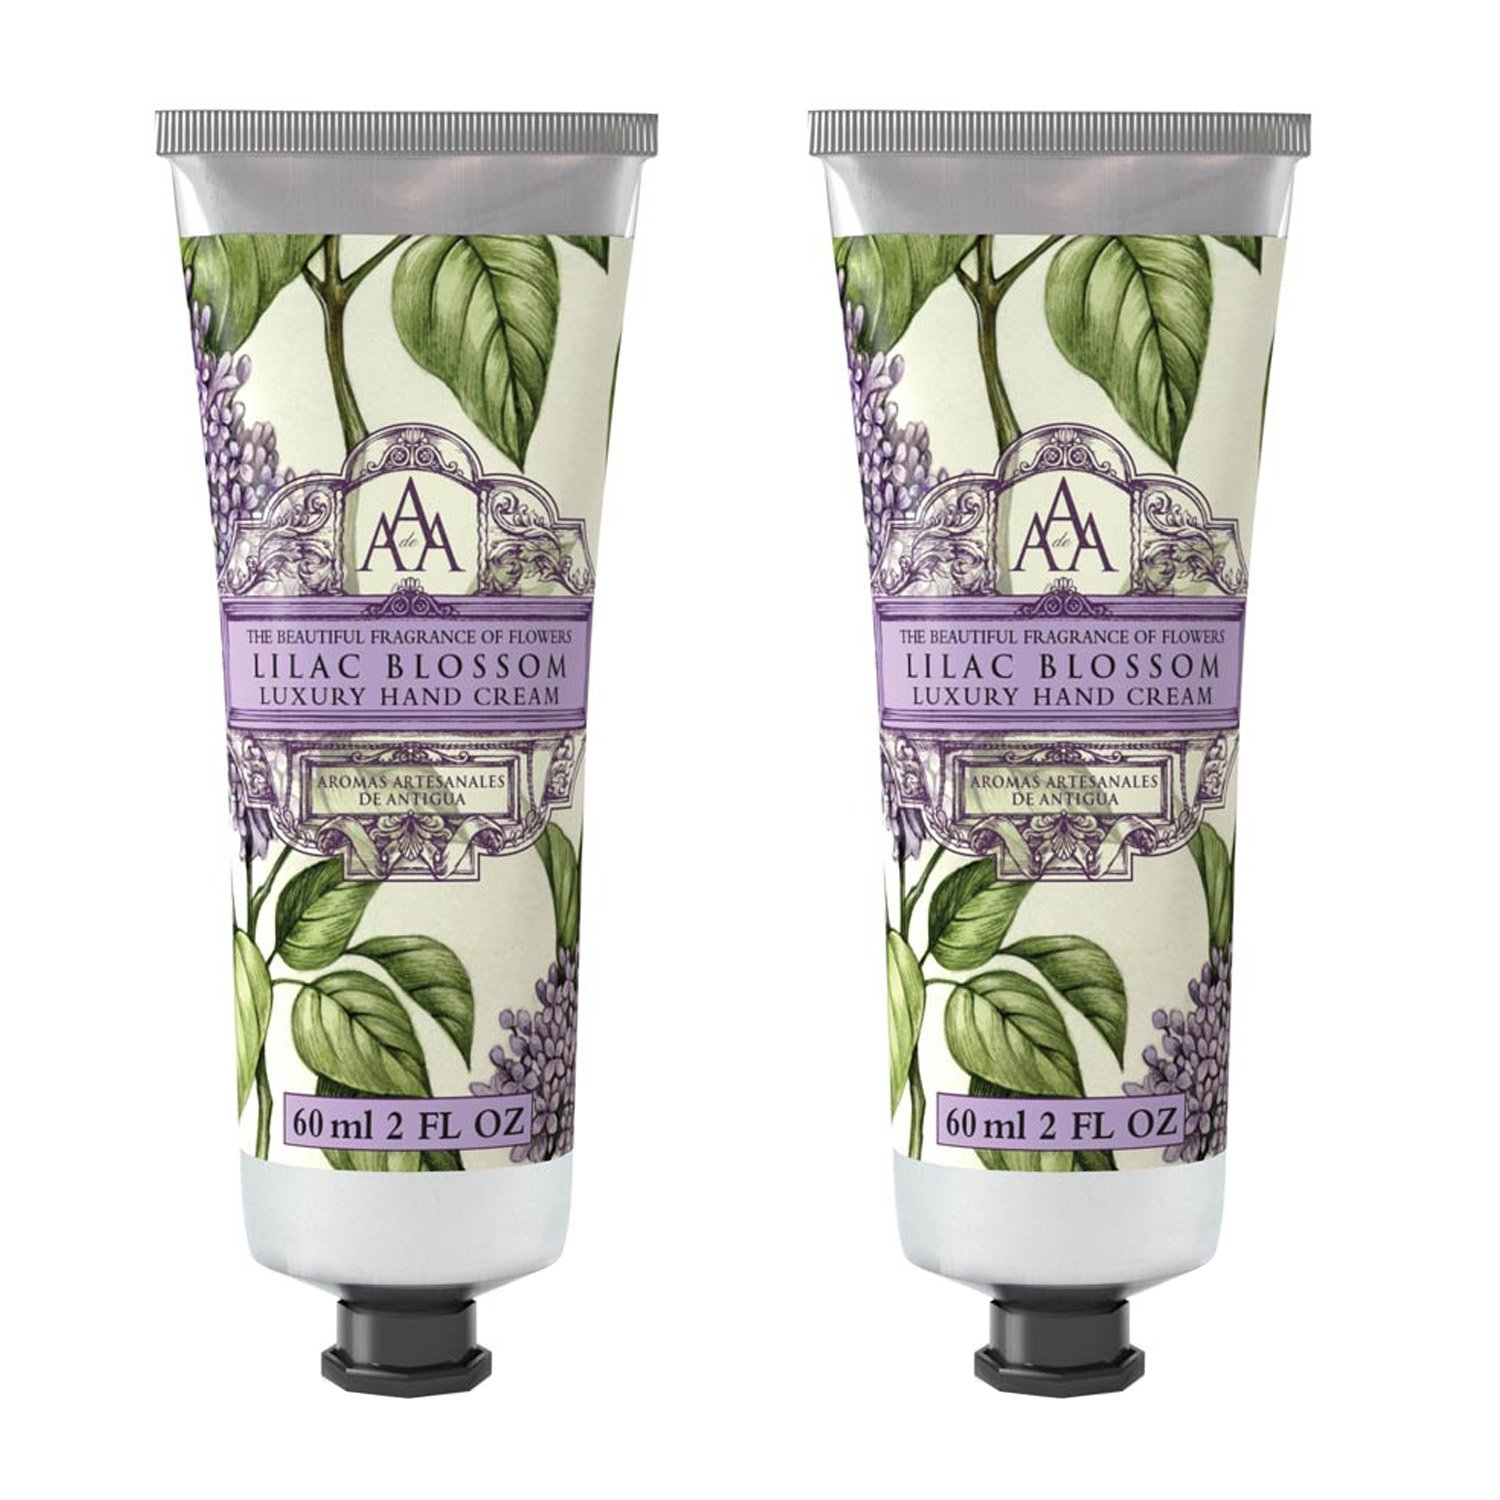 Somerset Toiletry Co. AAA Floral Hand Cream 2-Piece Set - Lilac Blossom by Aromas Artisanales de Antigua (Image #1)